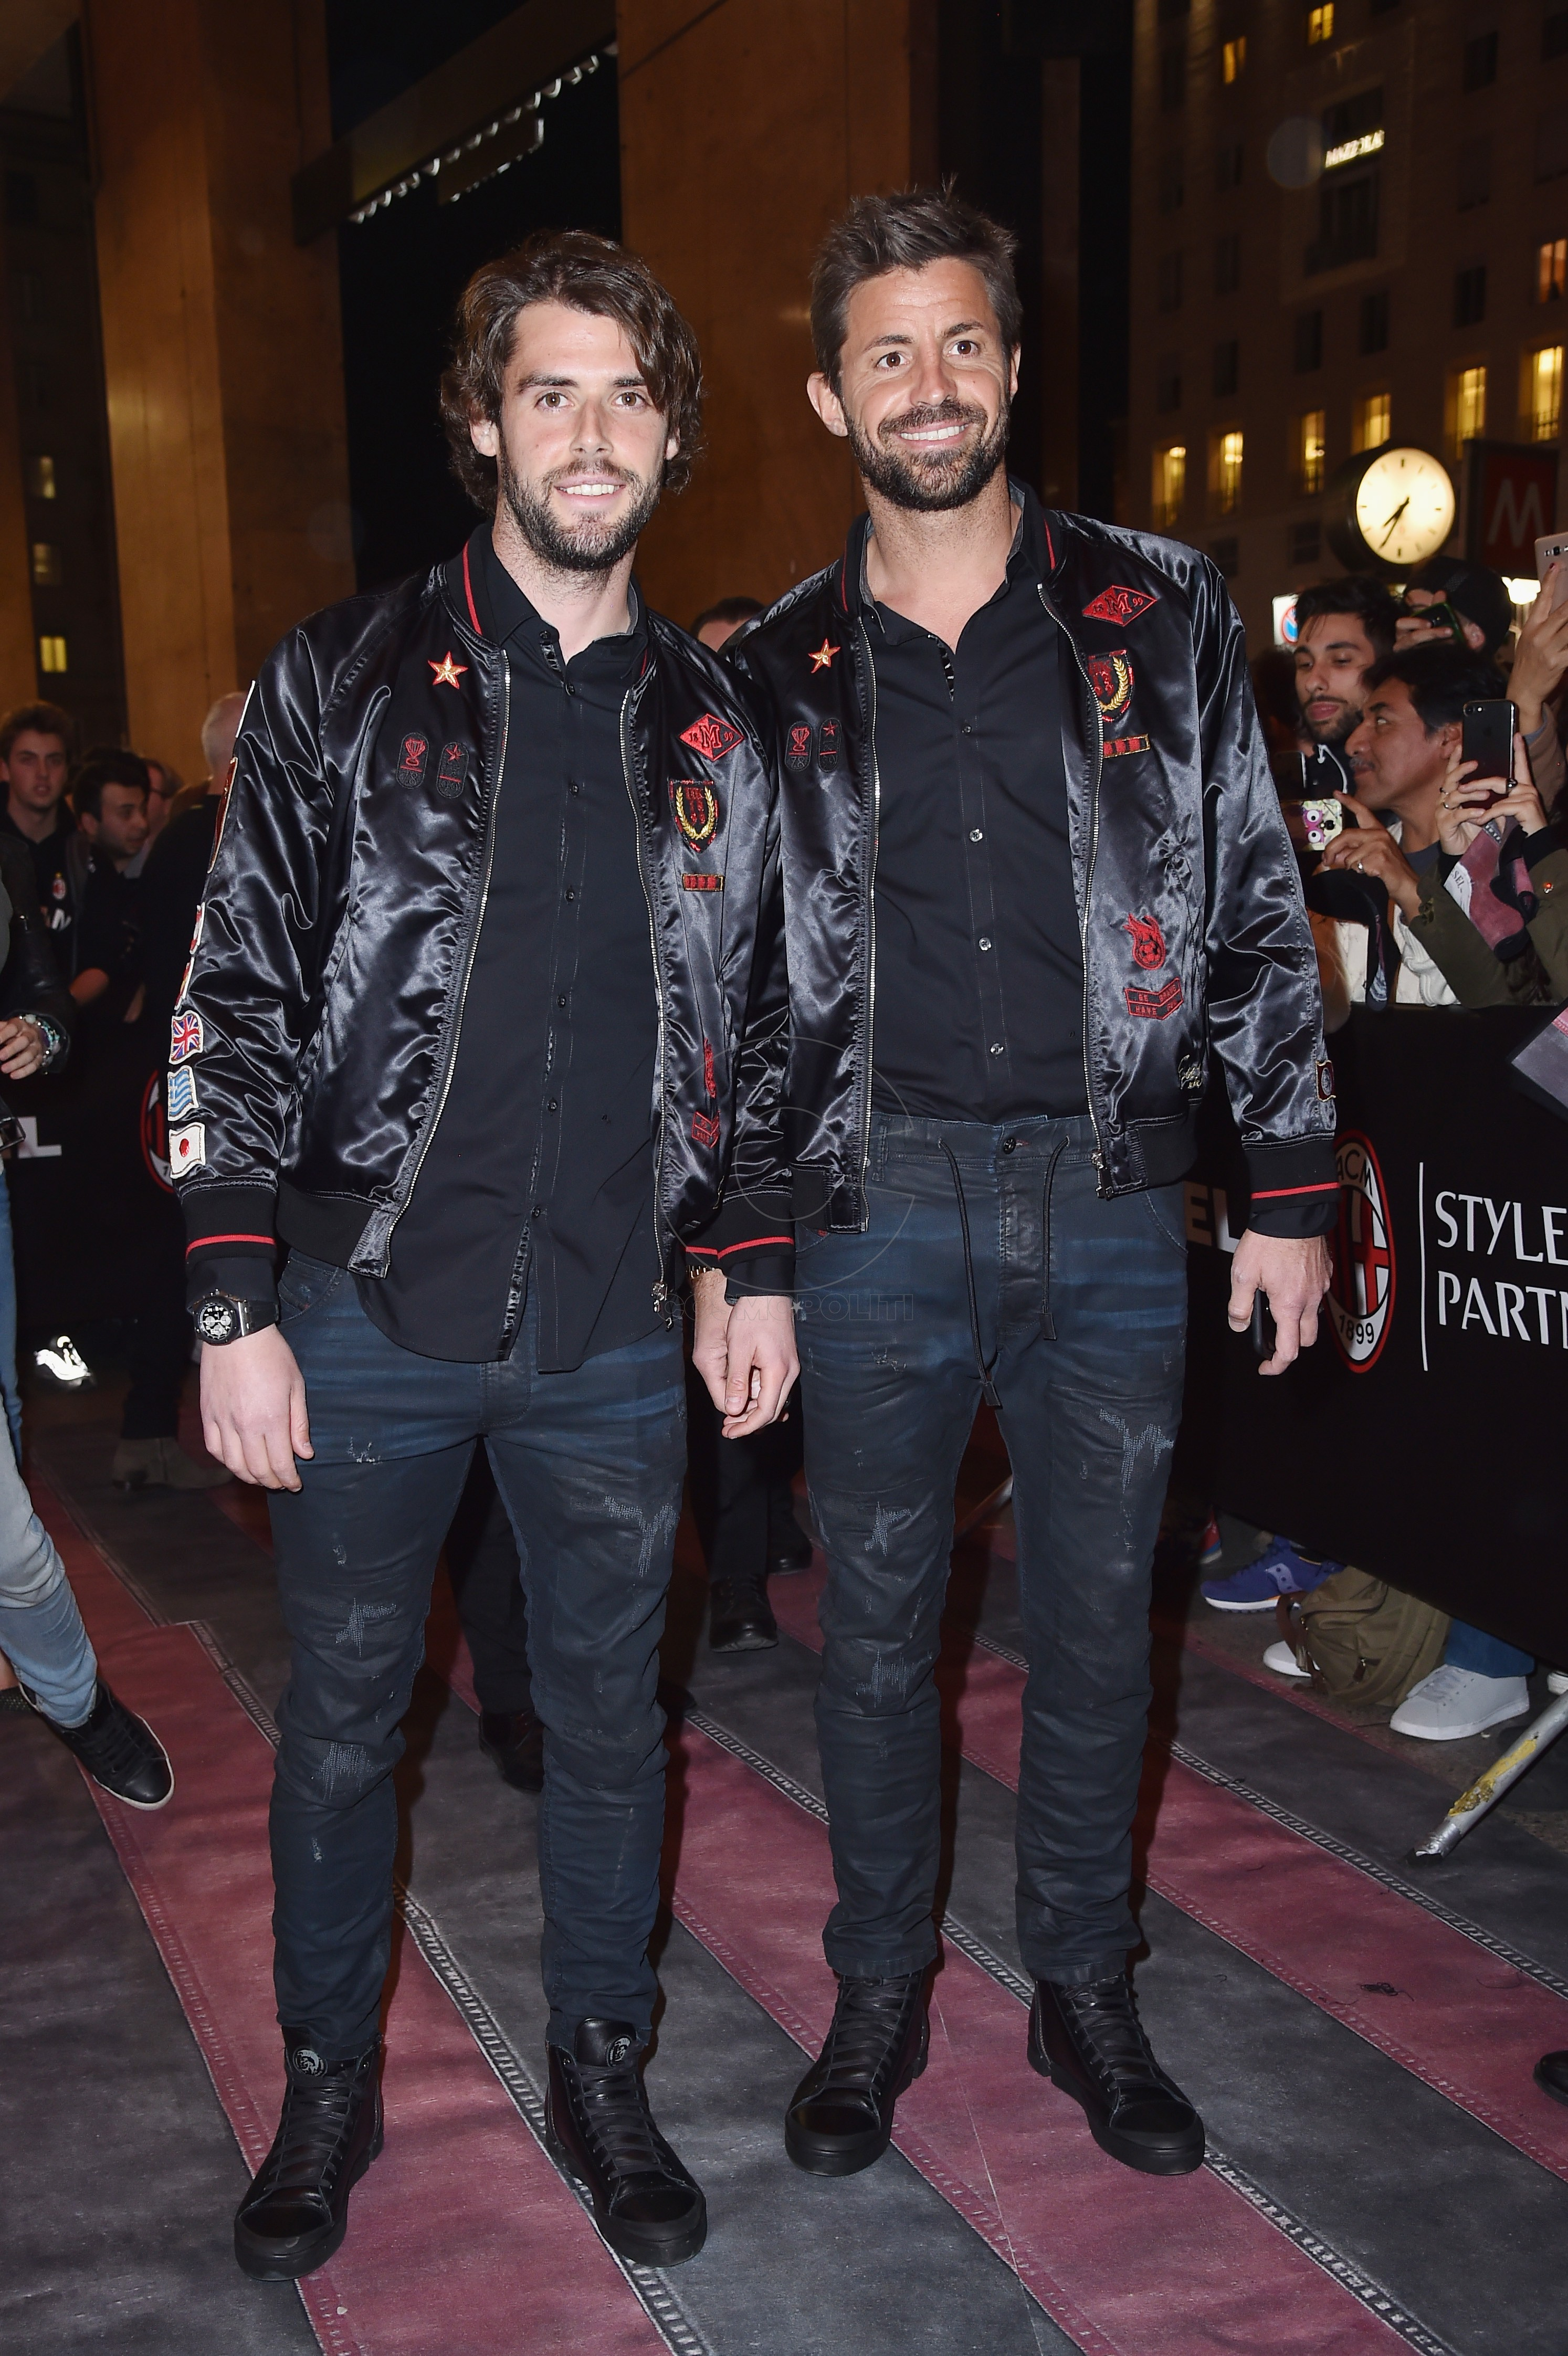 MILAN, ITALY - MARCH 14: Andrea Poli and Marco Storari attend The New Bomber Presentation at the Diesel Store on March 14, 2017 in Milan, Italy. (Photo by Jacopo Raule/Getty Images for Diesel)